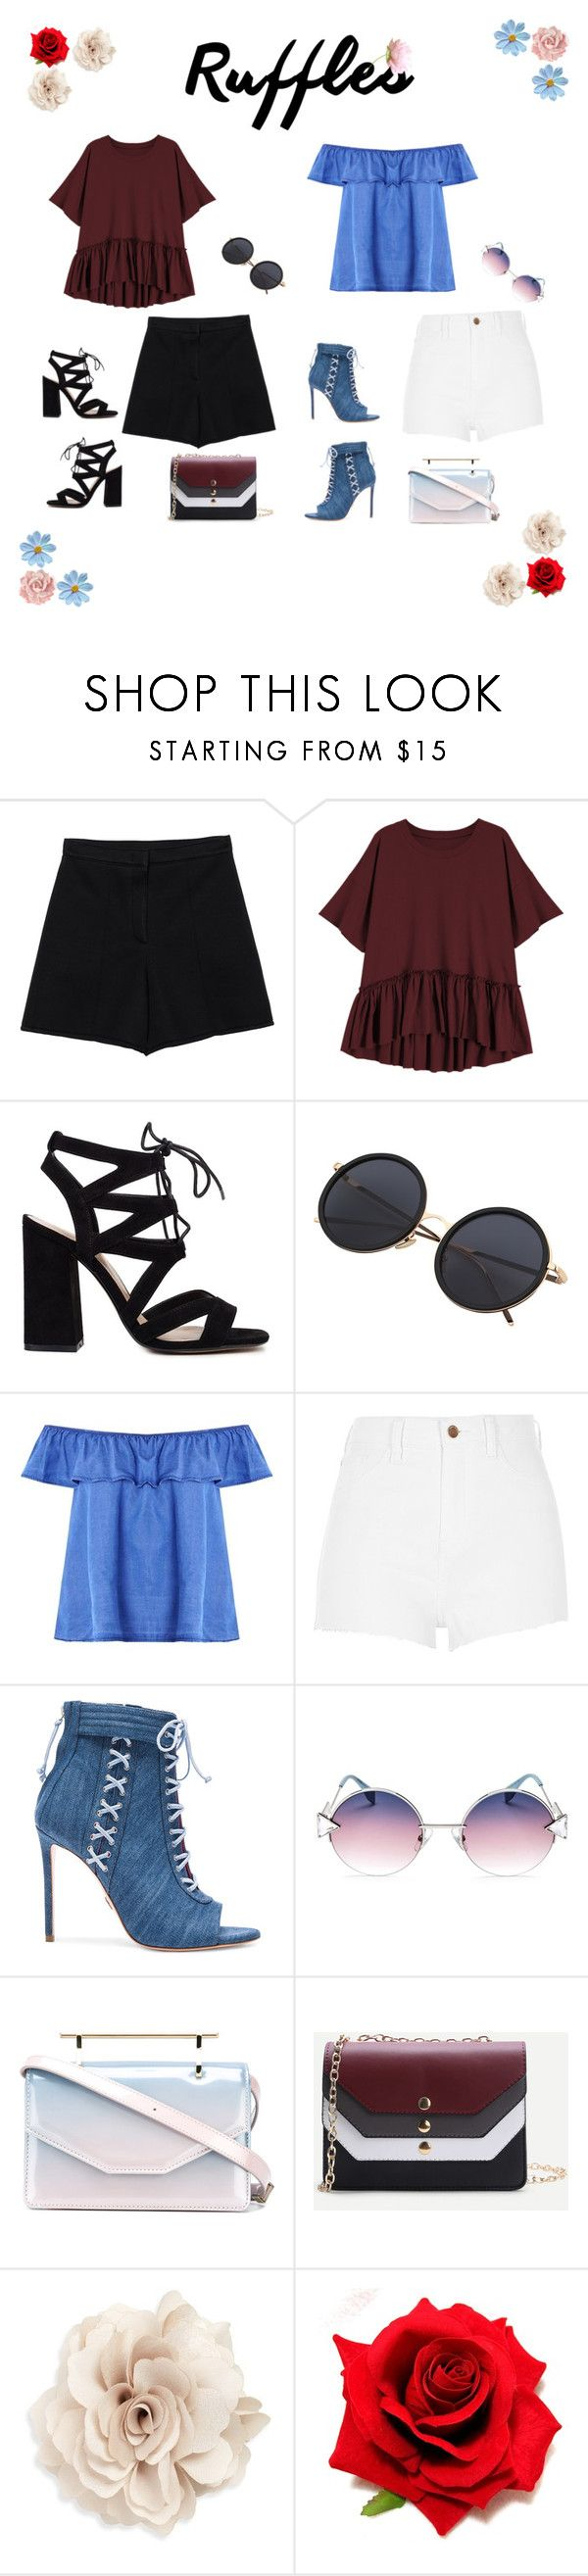 """""""Outfit with Ruffles Top"""" by sam-cruz8 ❤ liked on Polyvore featuring Sonia by Sonia Rykiel, Boohoo, River Island, Oscar Tiye, Fendi, M2Malletier, WithChic, Cara, GetTheLook and ruffles"""